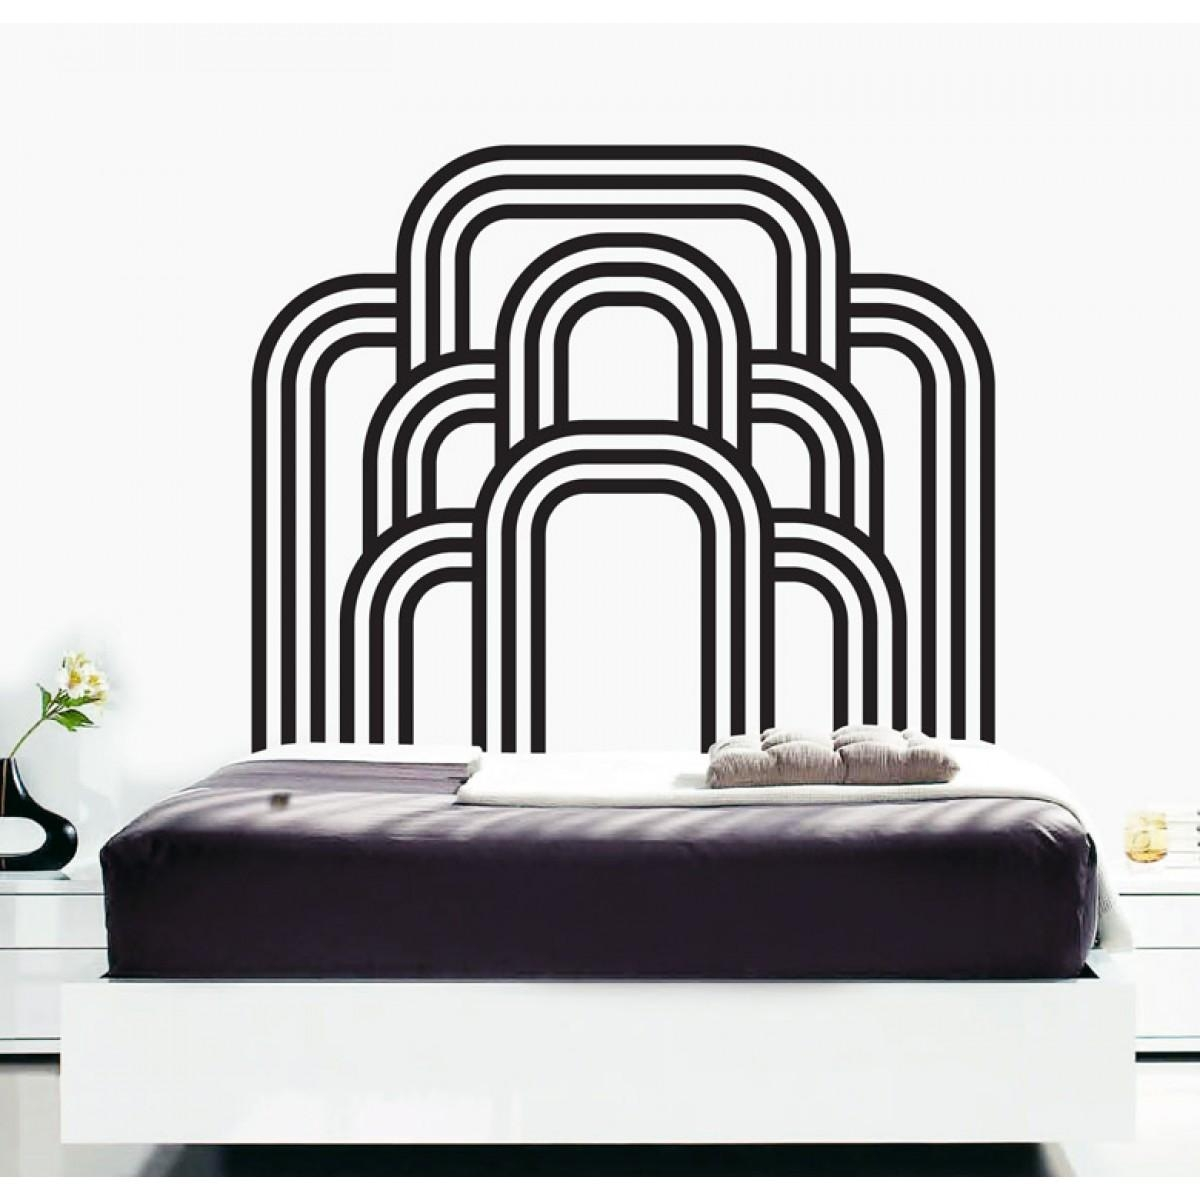 20 Ideas of Art Deco Wall Decals